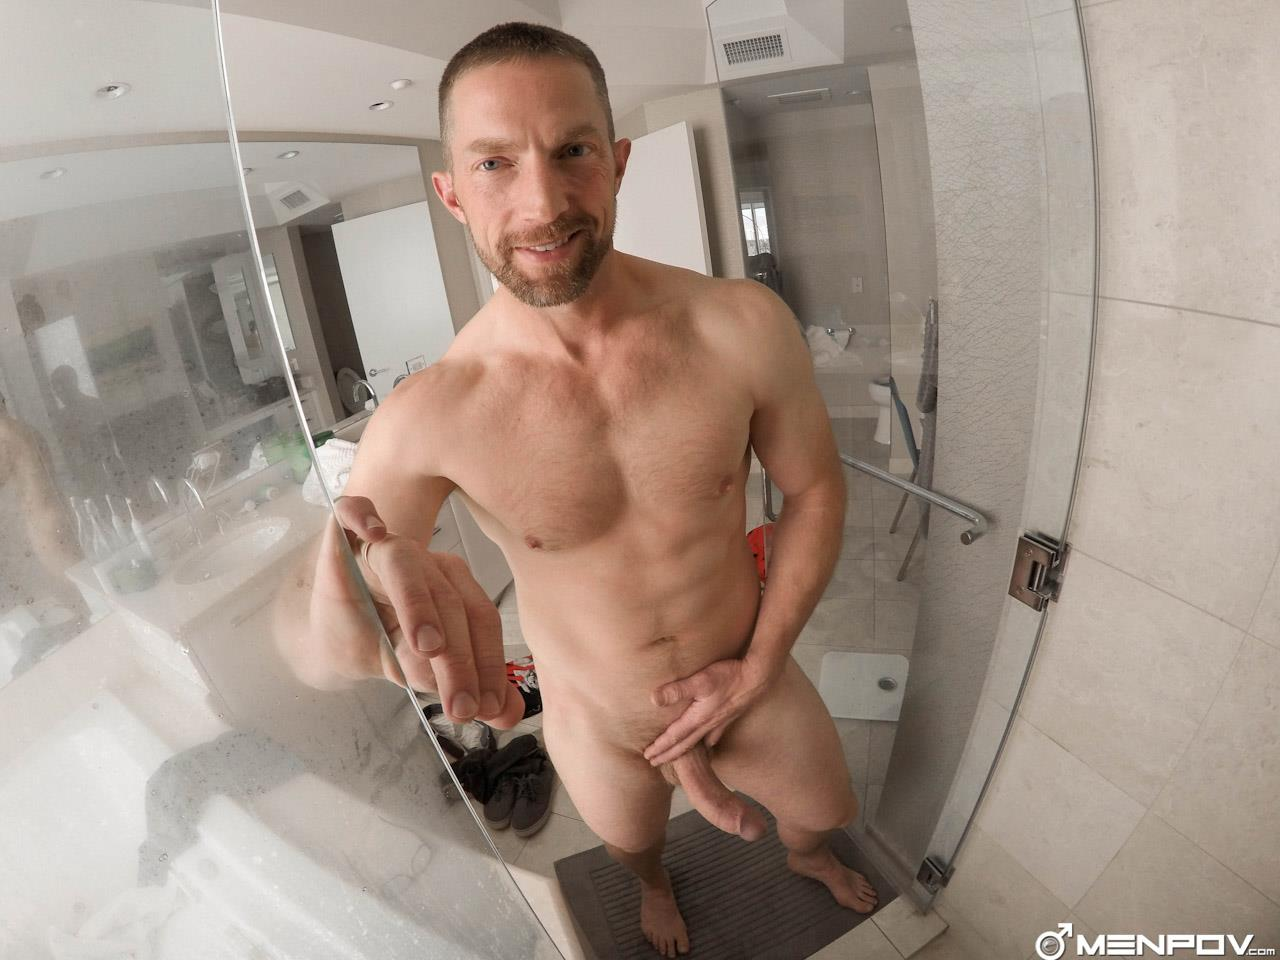 MenPOV Colt Rivers and Adam Herst Daddy Fucking His Boy Toy With A Thick Cock Amateur Gay Porn 10 Muscular Daddy Fucking His Boy Toy With His Thick Hard Cock